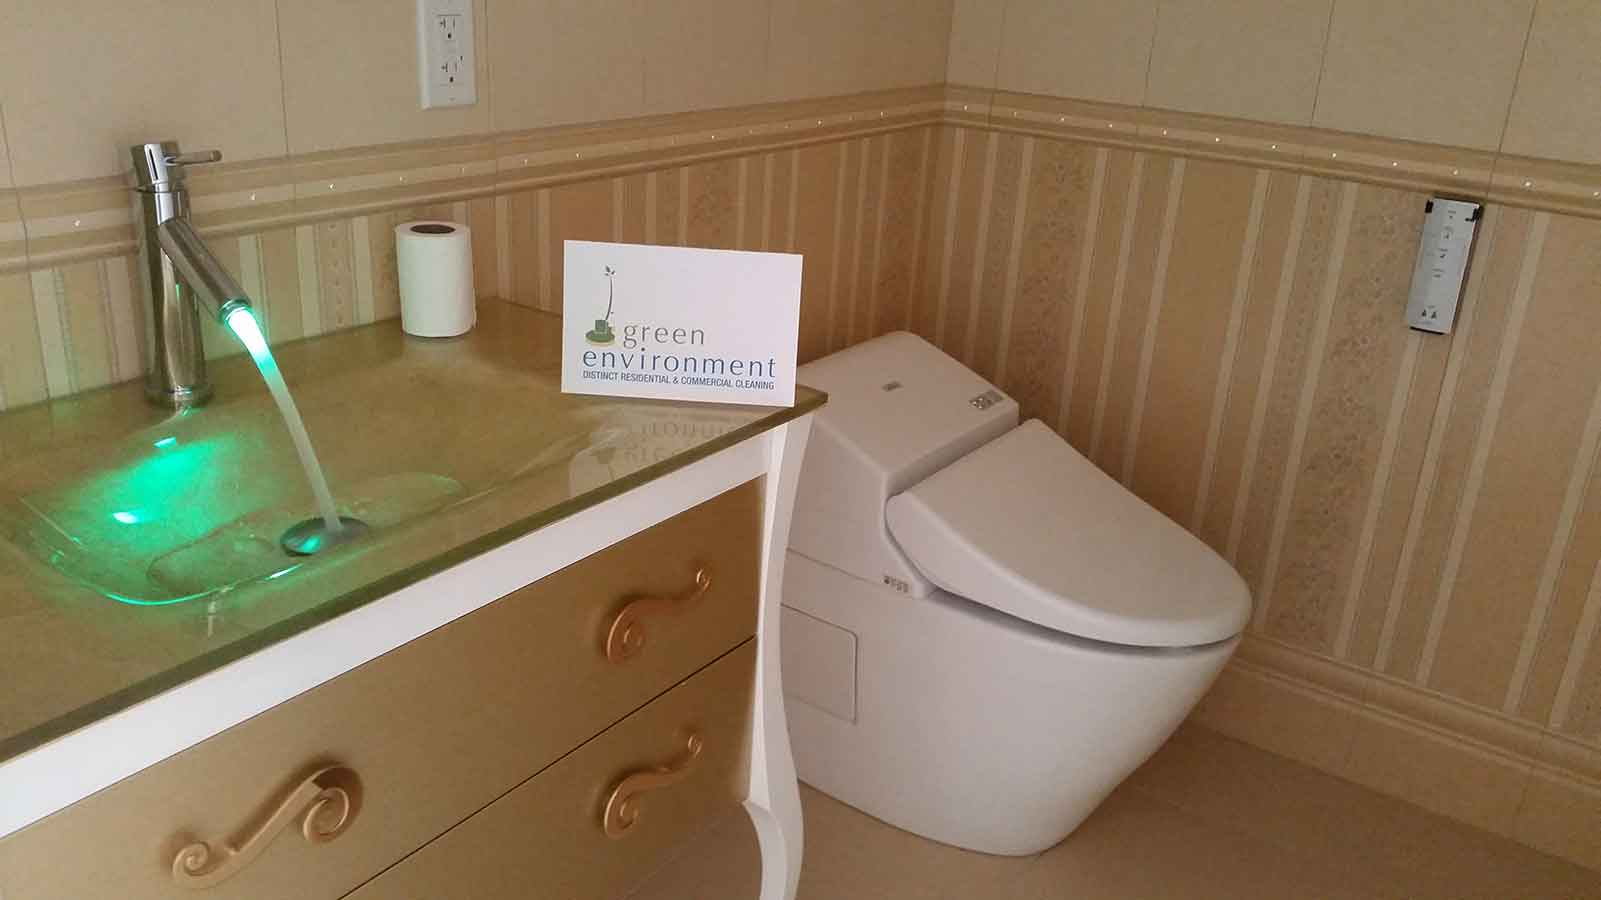 Remodeled luxury bathroom with wood paneled walls, post-construction cleaning by Post Green Cleaning.